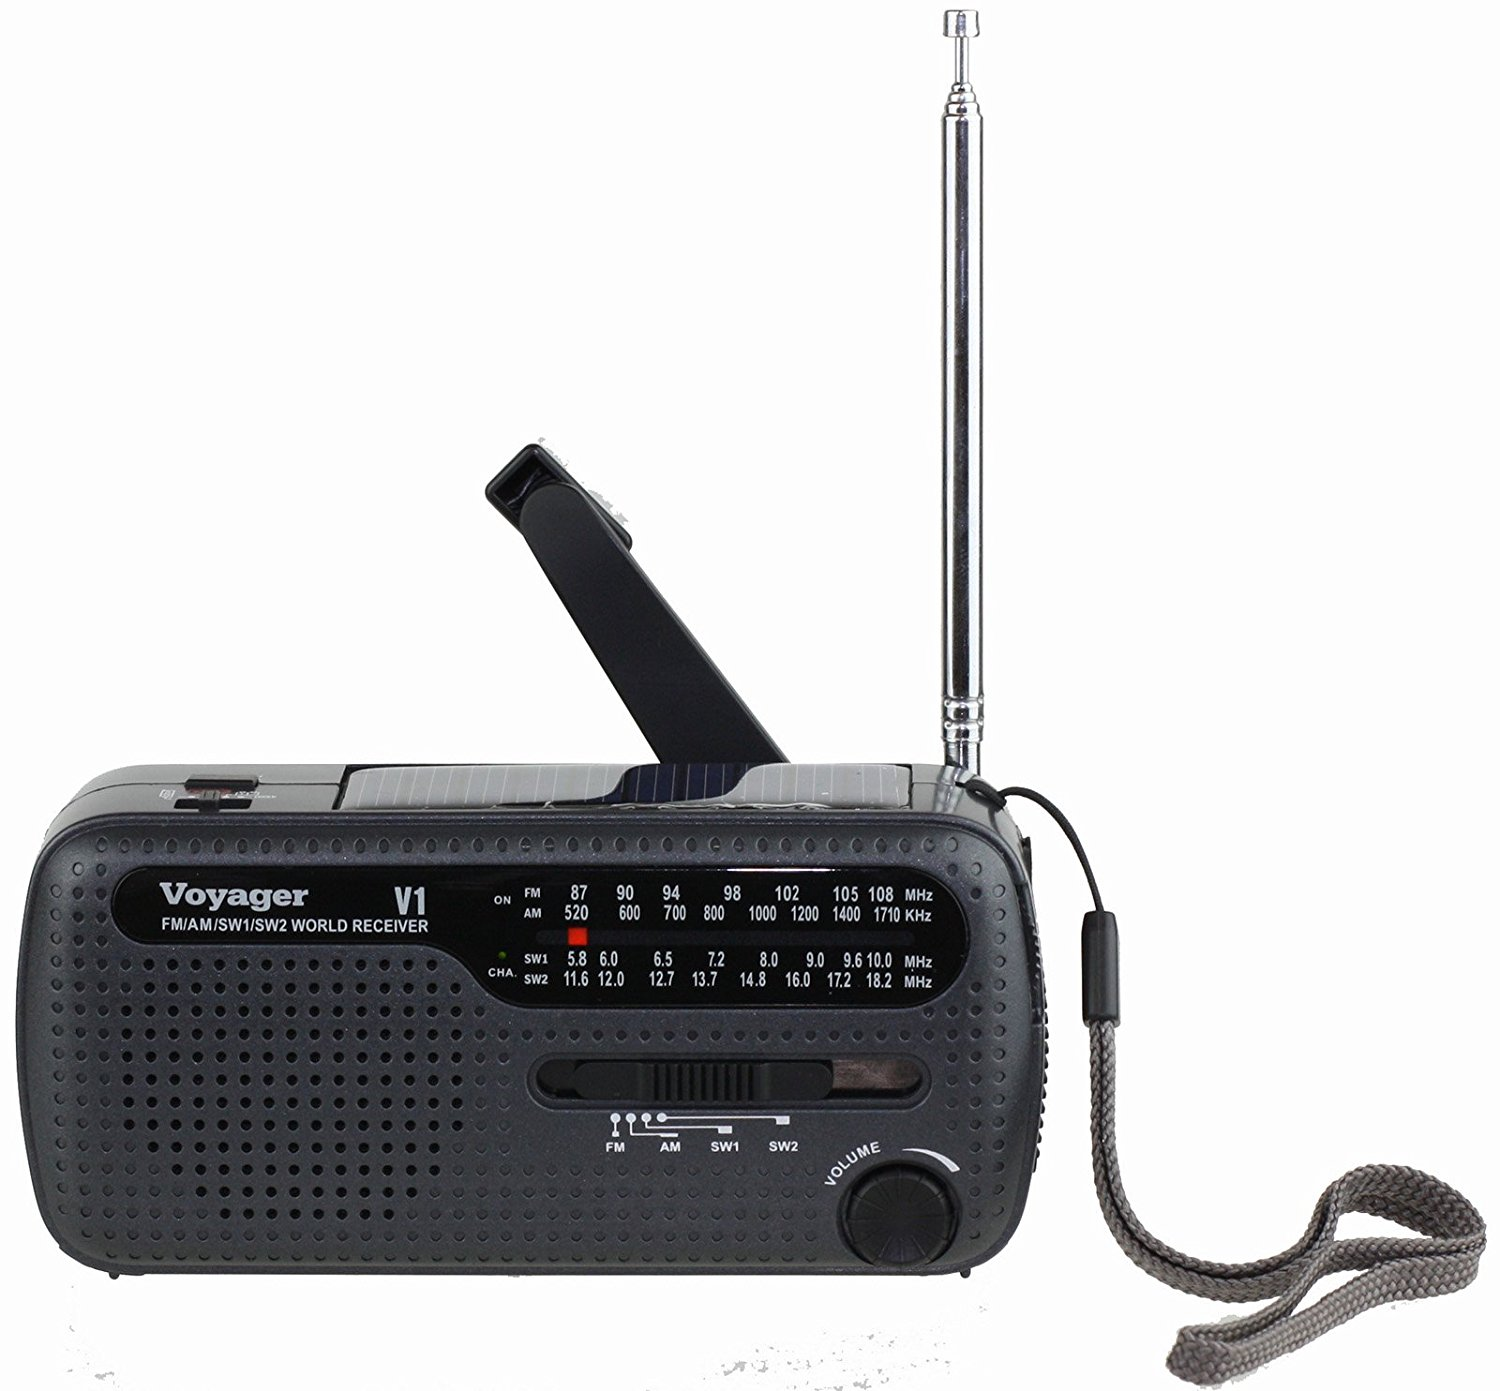 Kaito V1R Voyager Solar Dynamo AM FM SW Emergency Radio with Cell Phone Charger and 3-LED Flashlight Black by Kaito